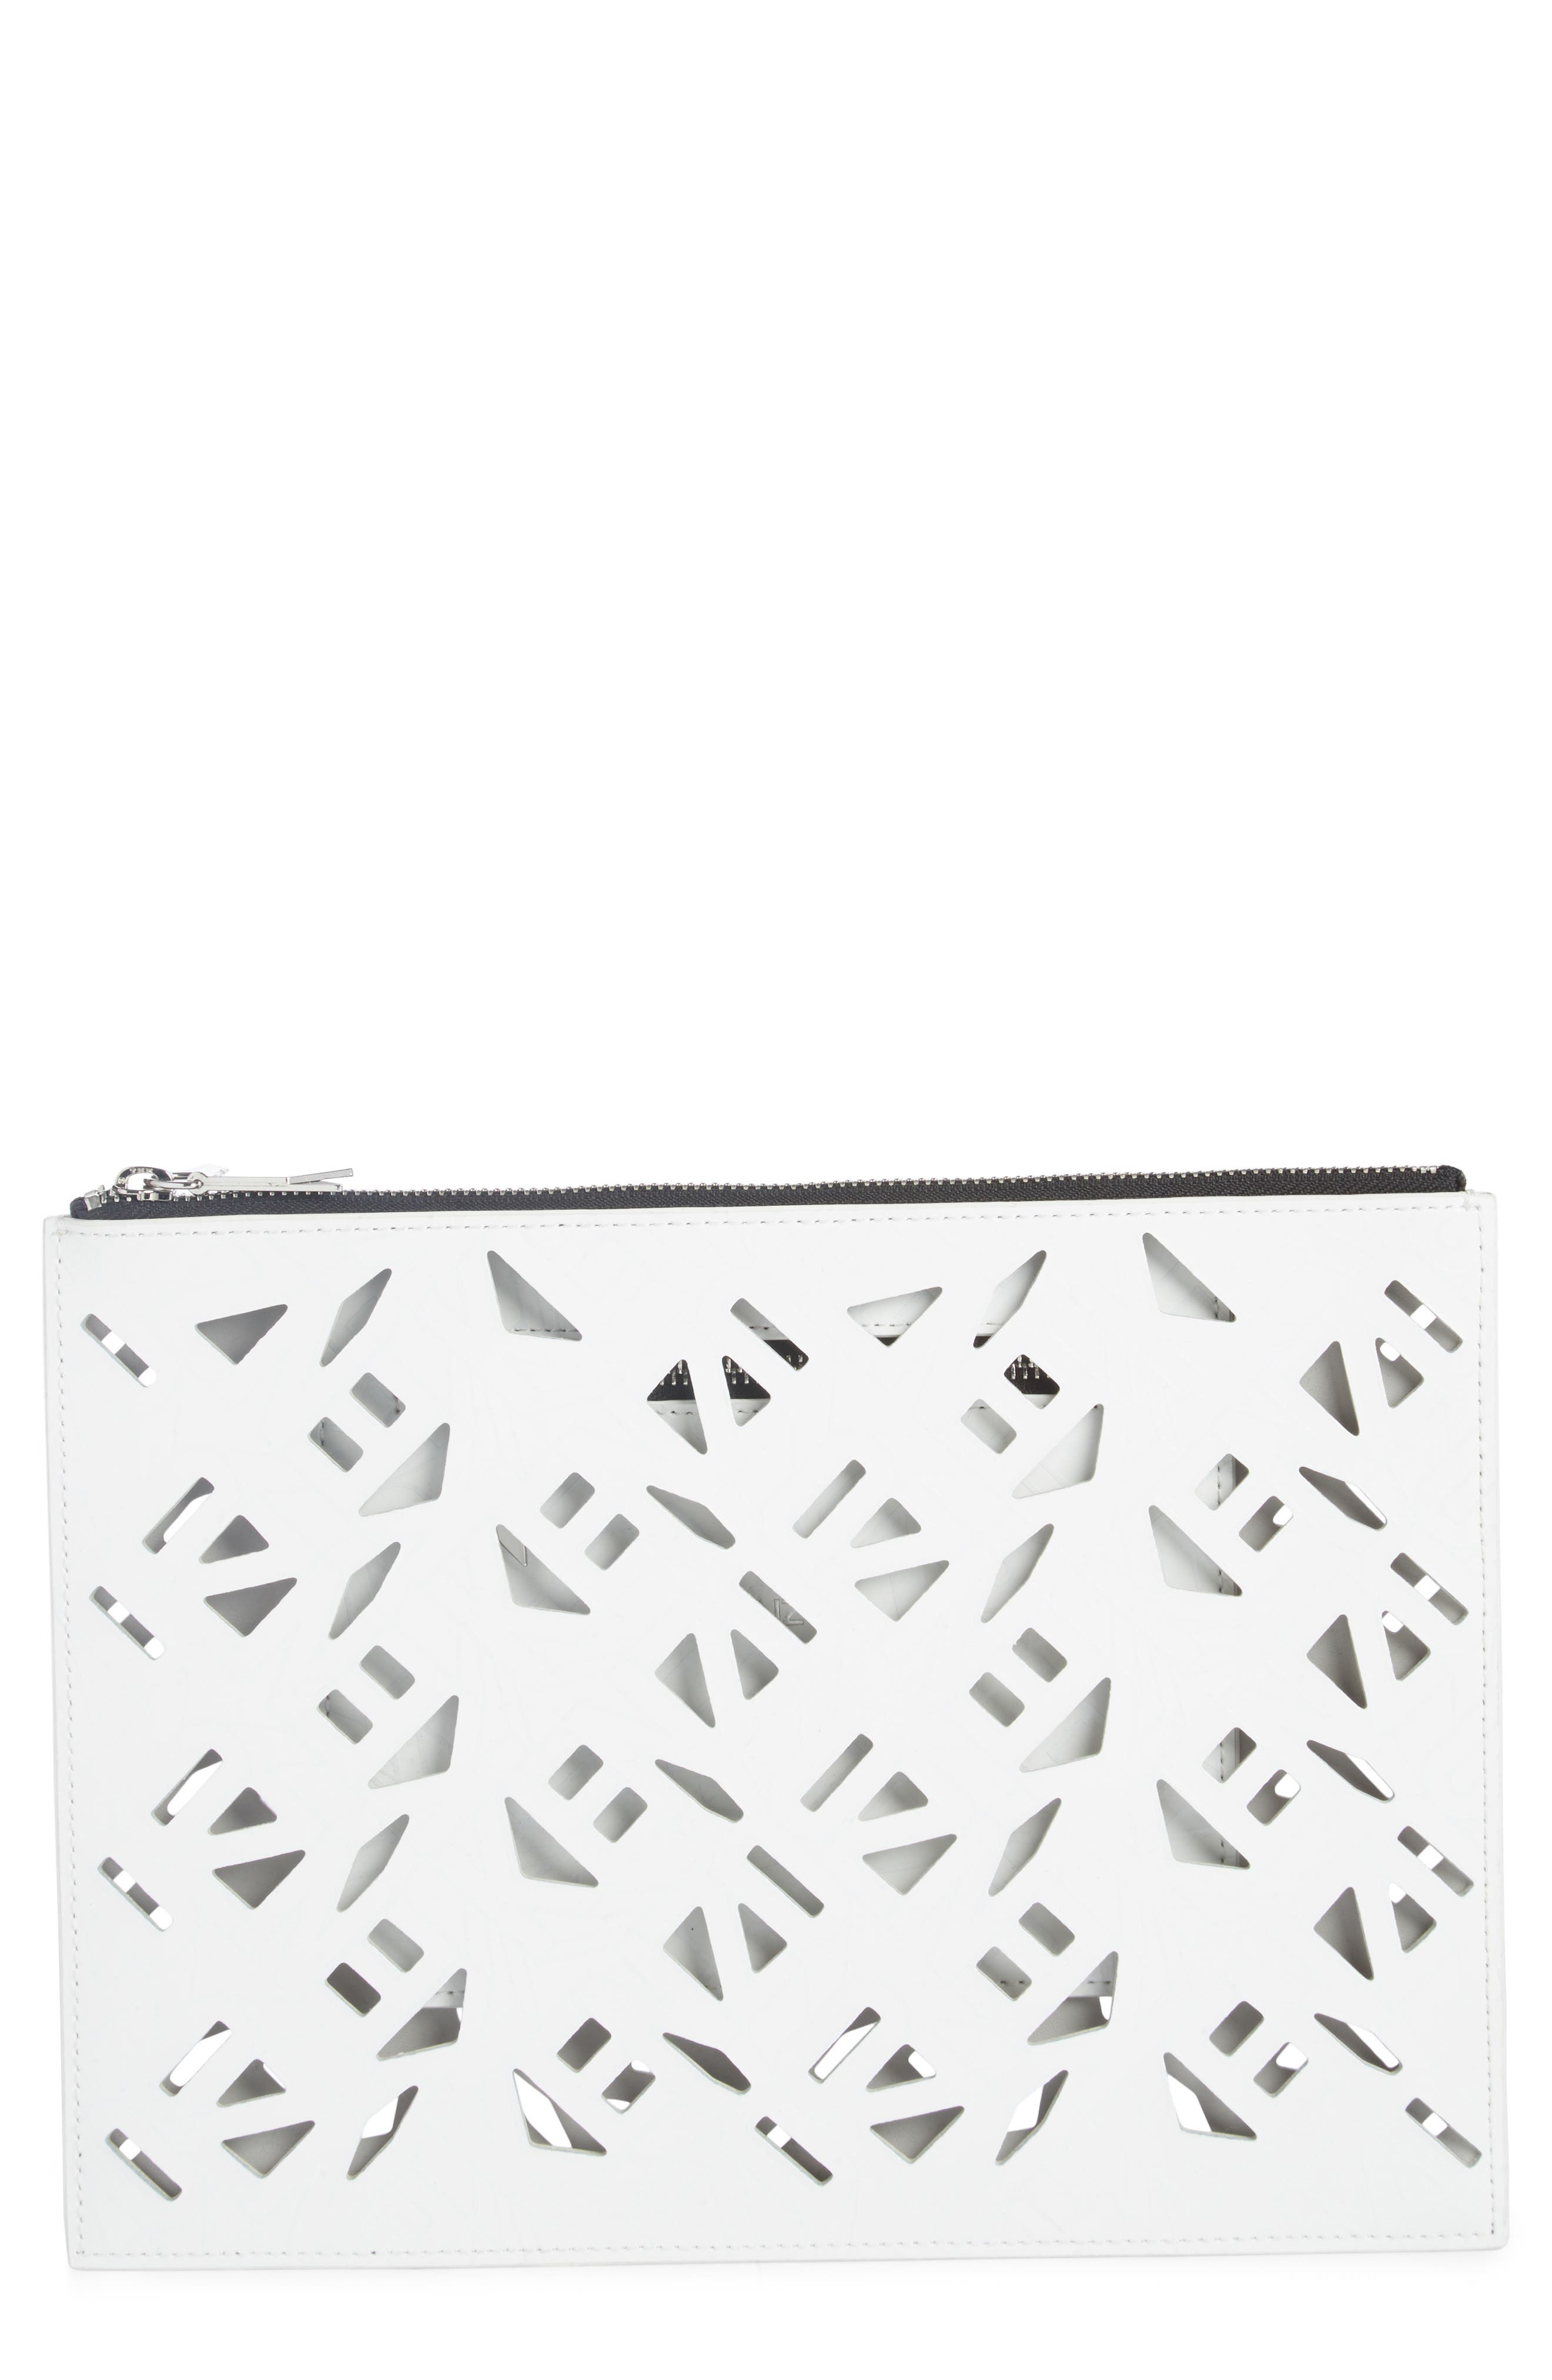 Main Image - KENZO Art Gummy Perforated Leather A4 Pouch